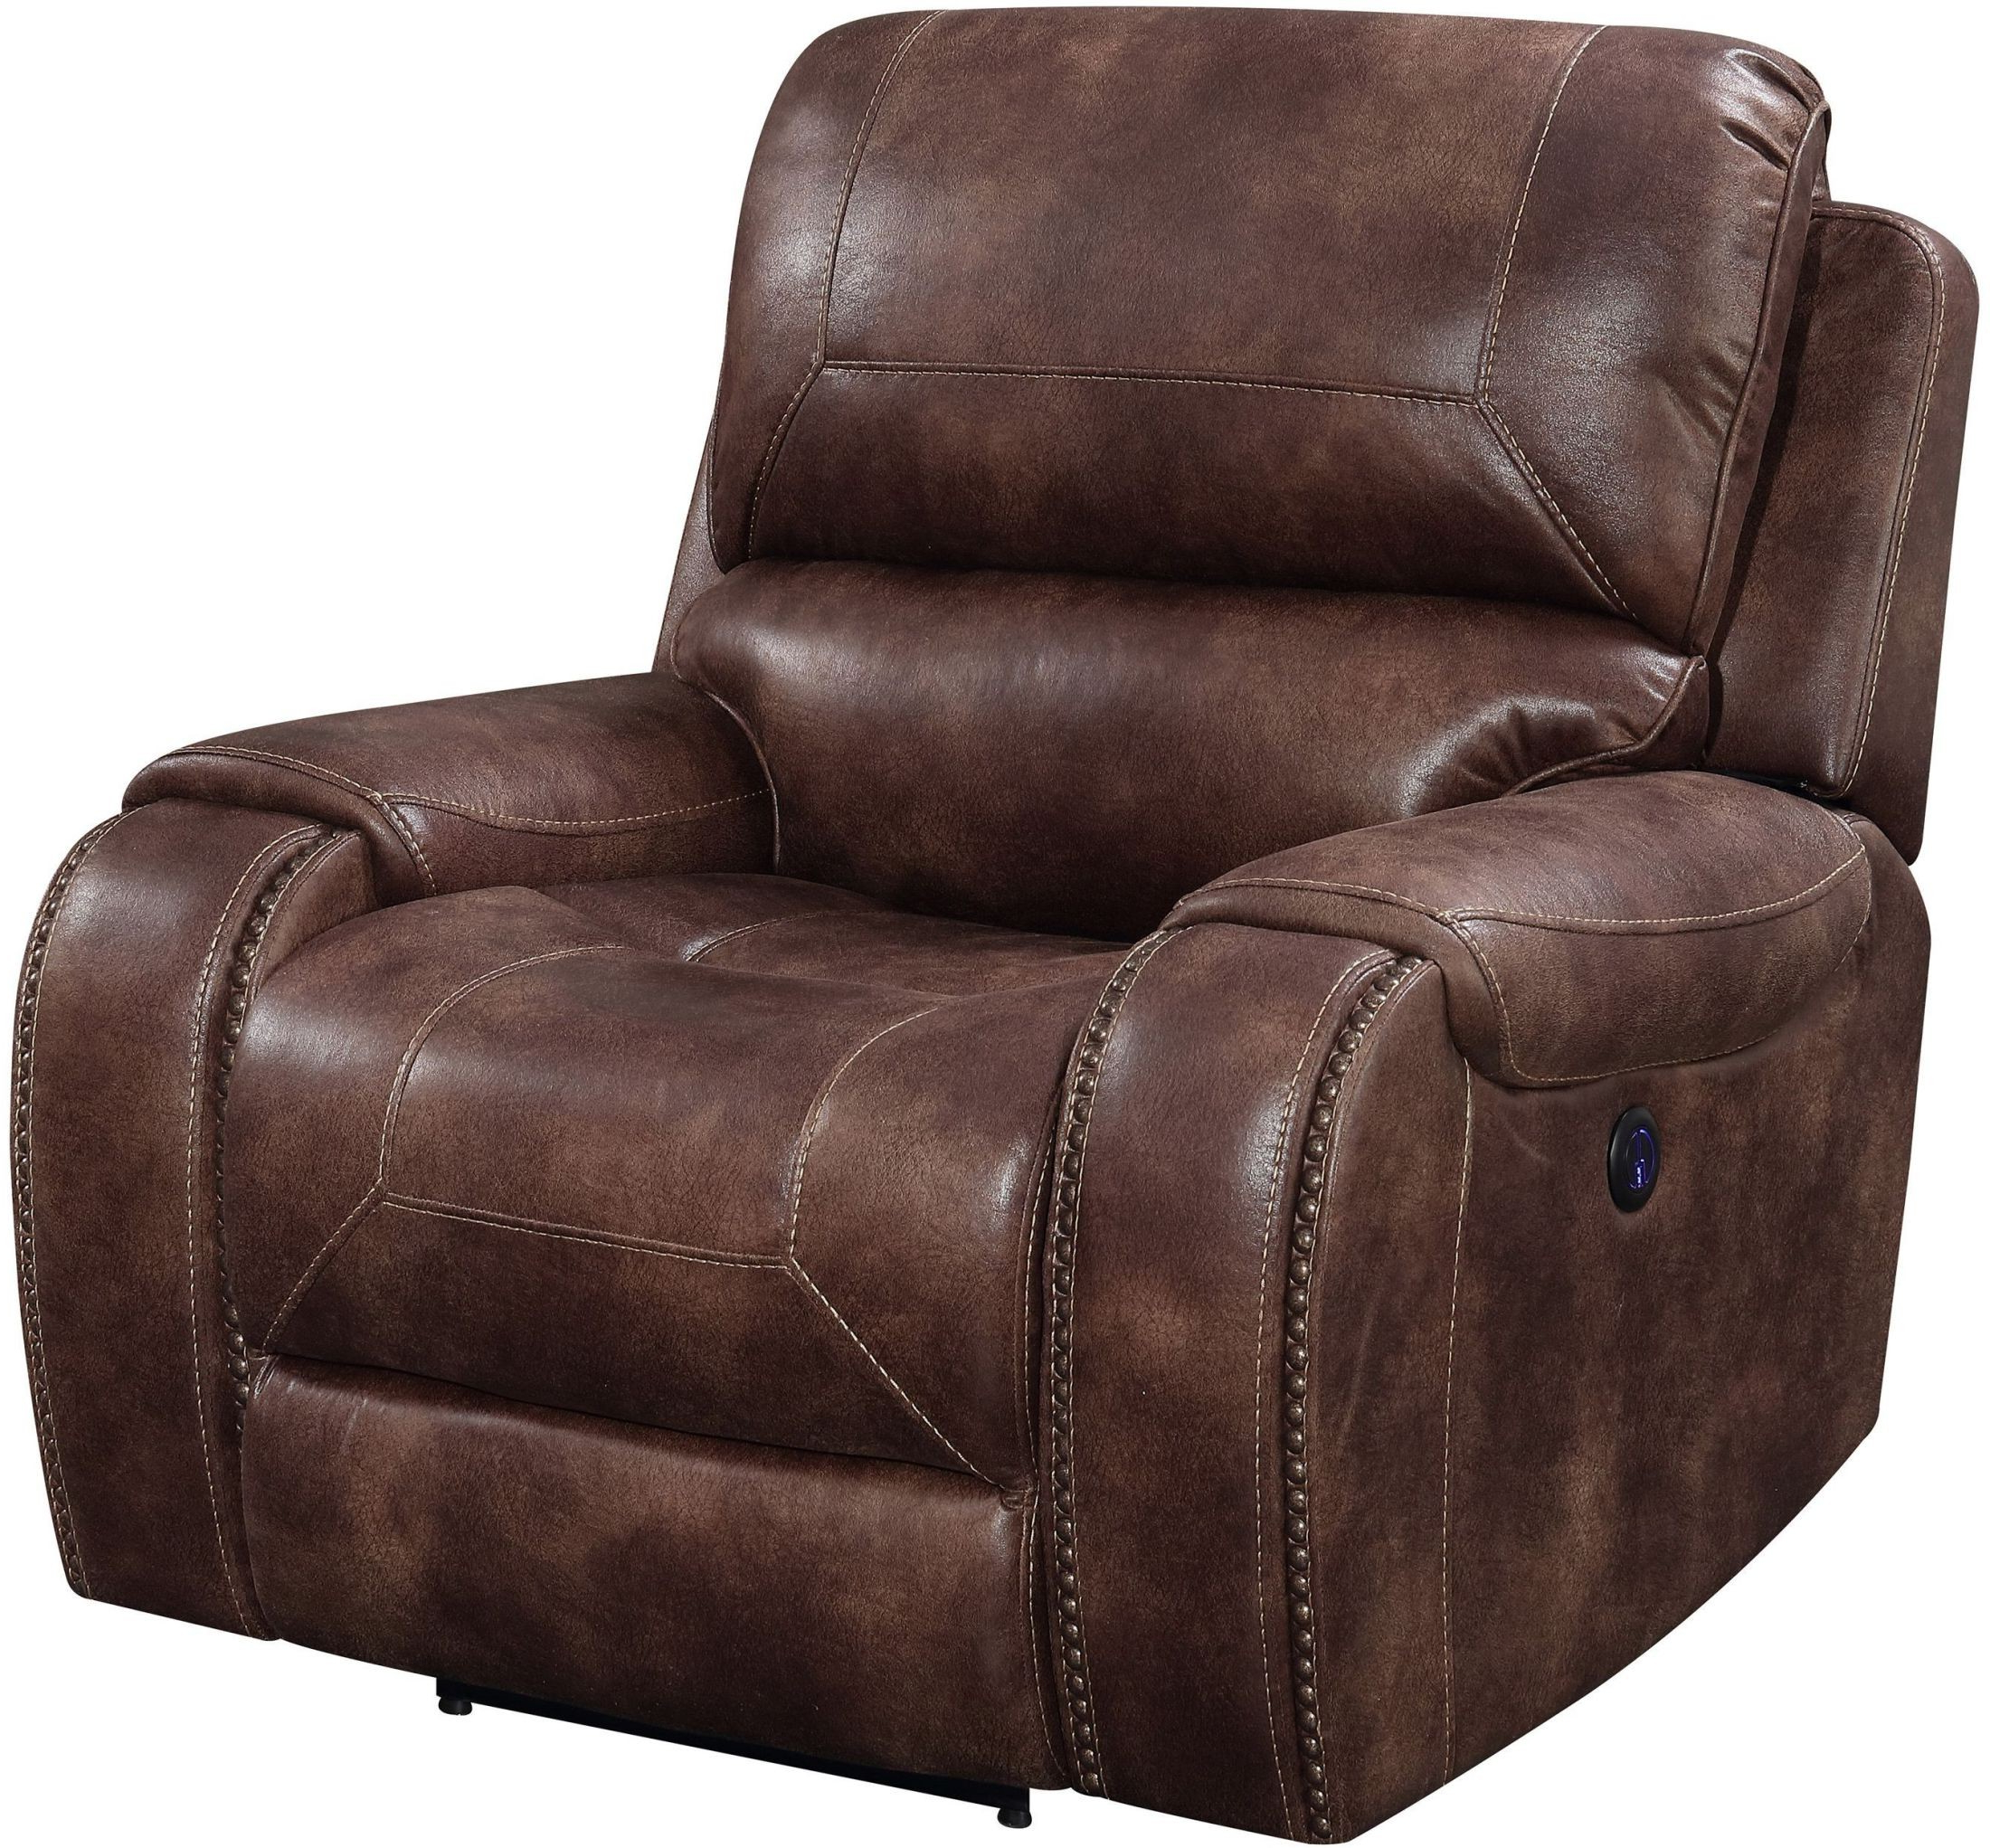 Jennings Waylon Mocha Power Recliner From Prime Resource Pertaining To Famous Waylon 3 Piece Power Reclining Sectionals (Gallery 8 of 20)